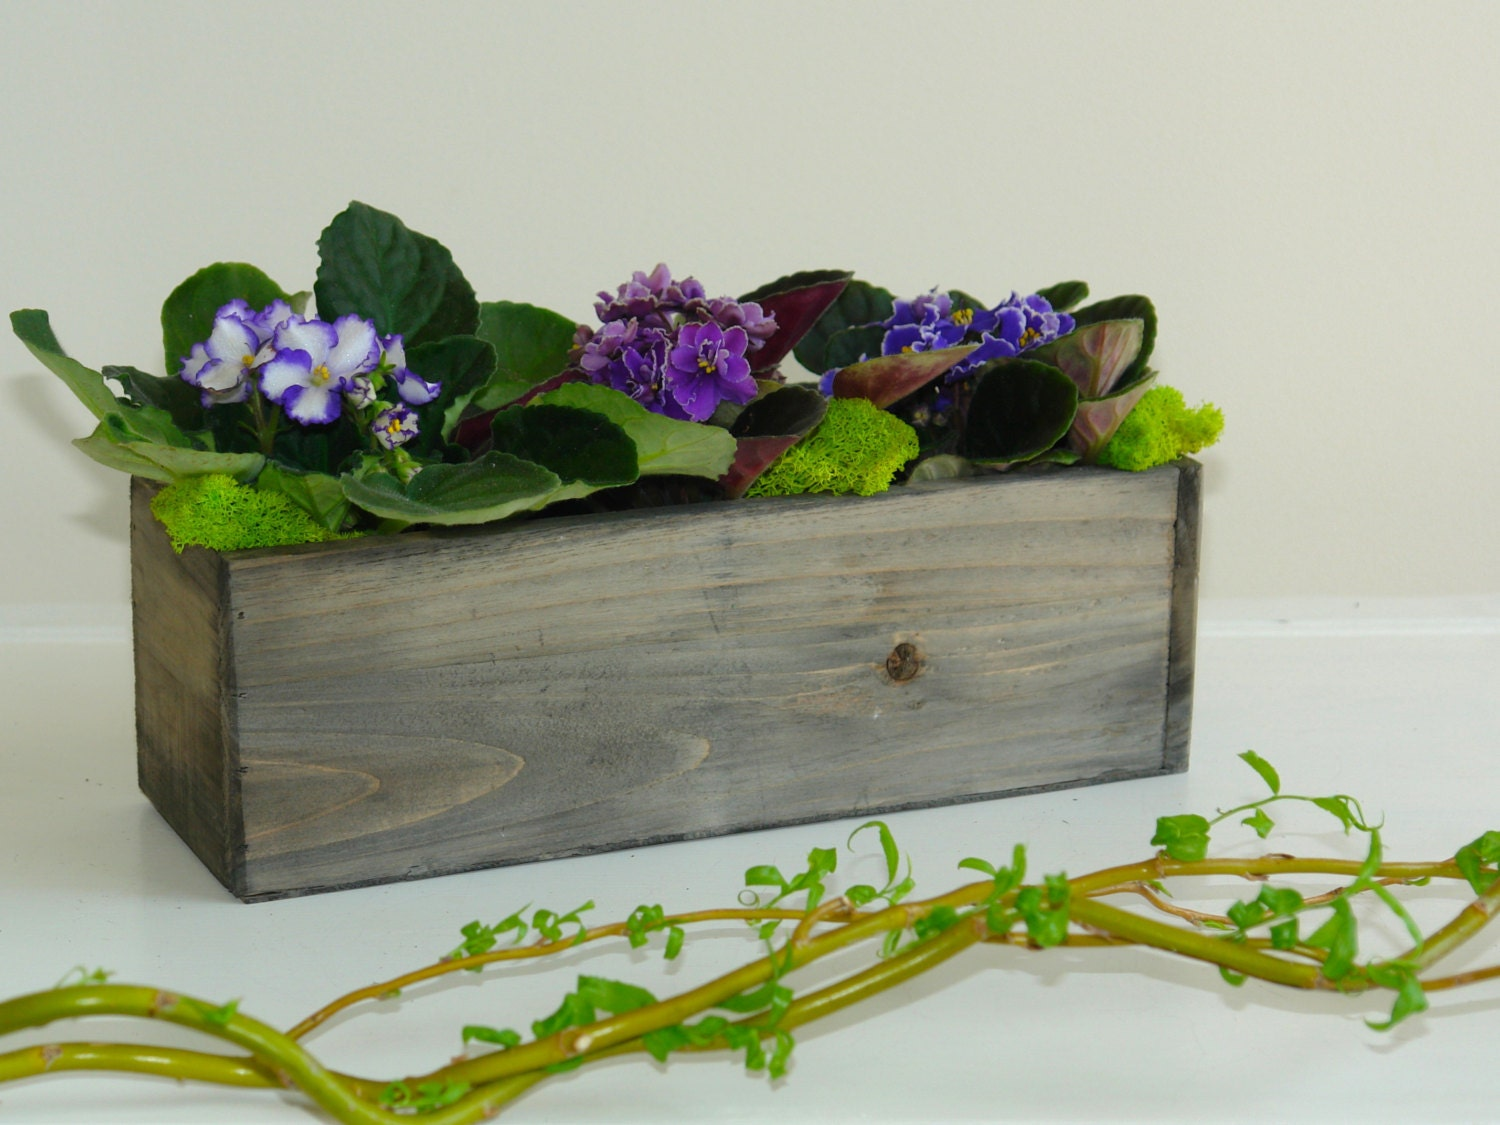 Wood box woodland planter flower box rustic pot by aniamelisa - Wooden containers for flowers ...